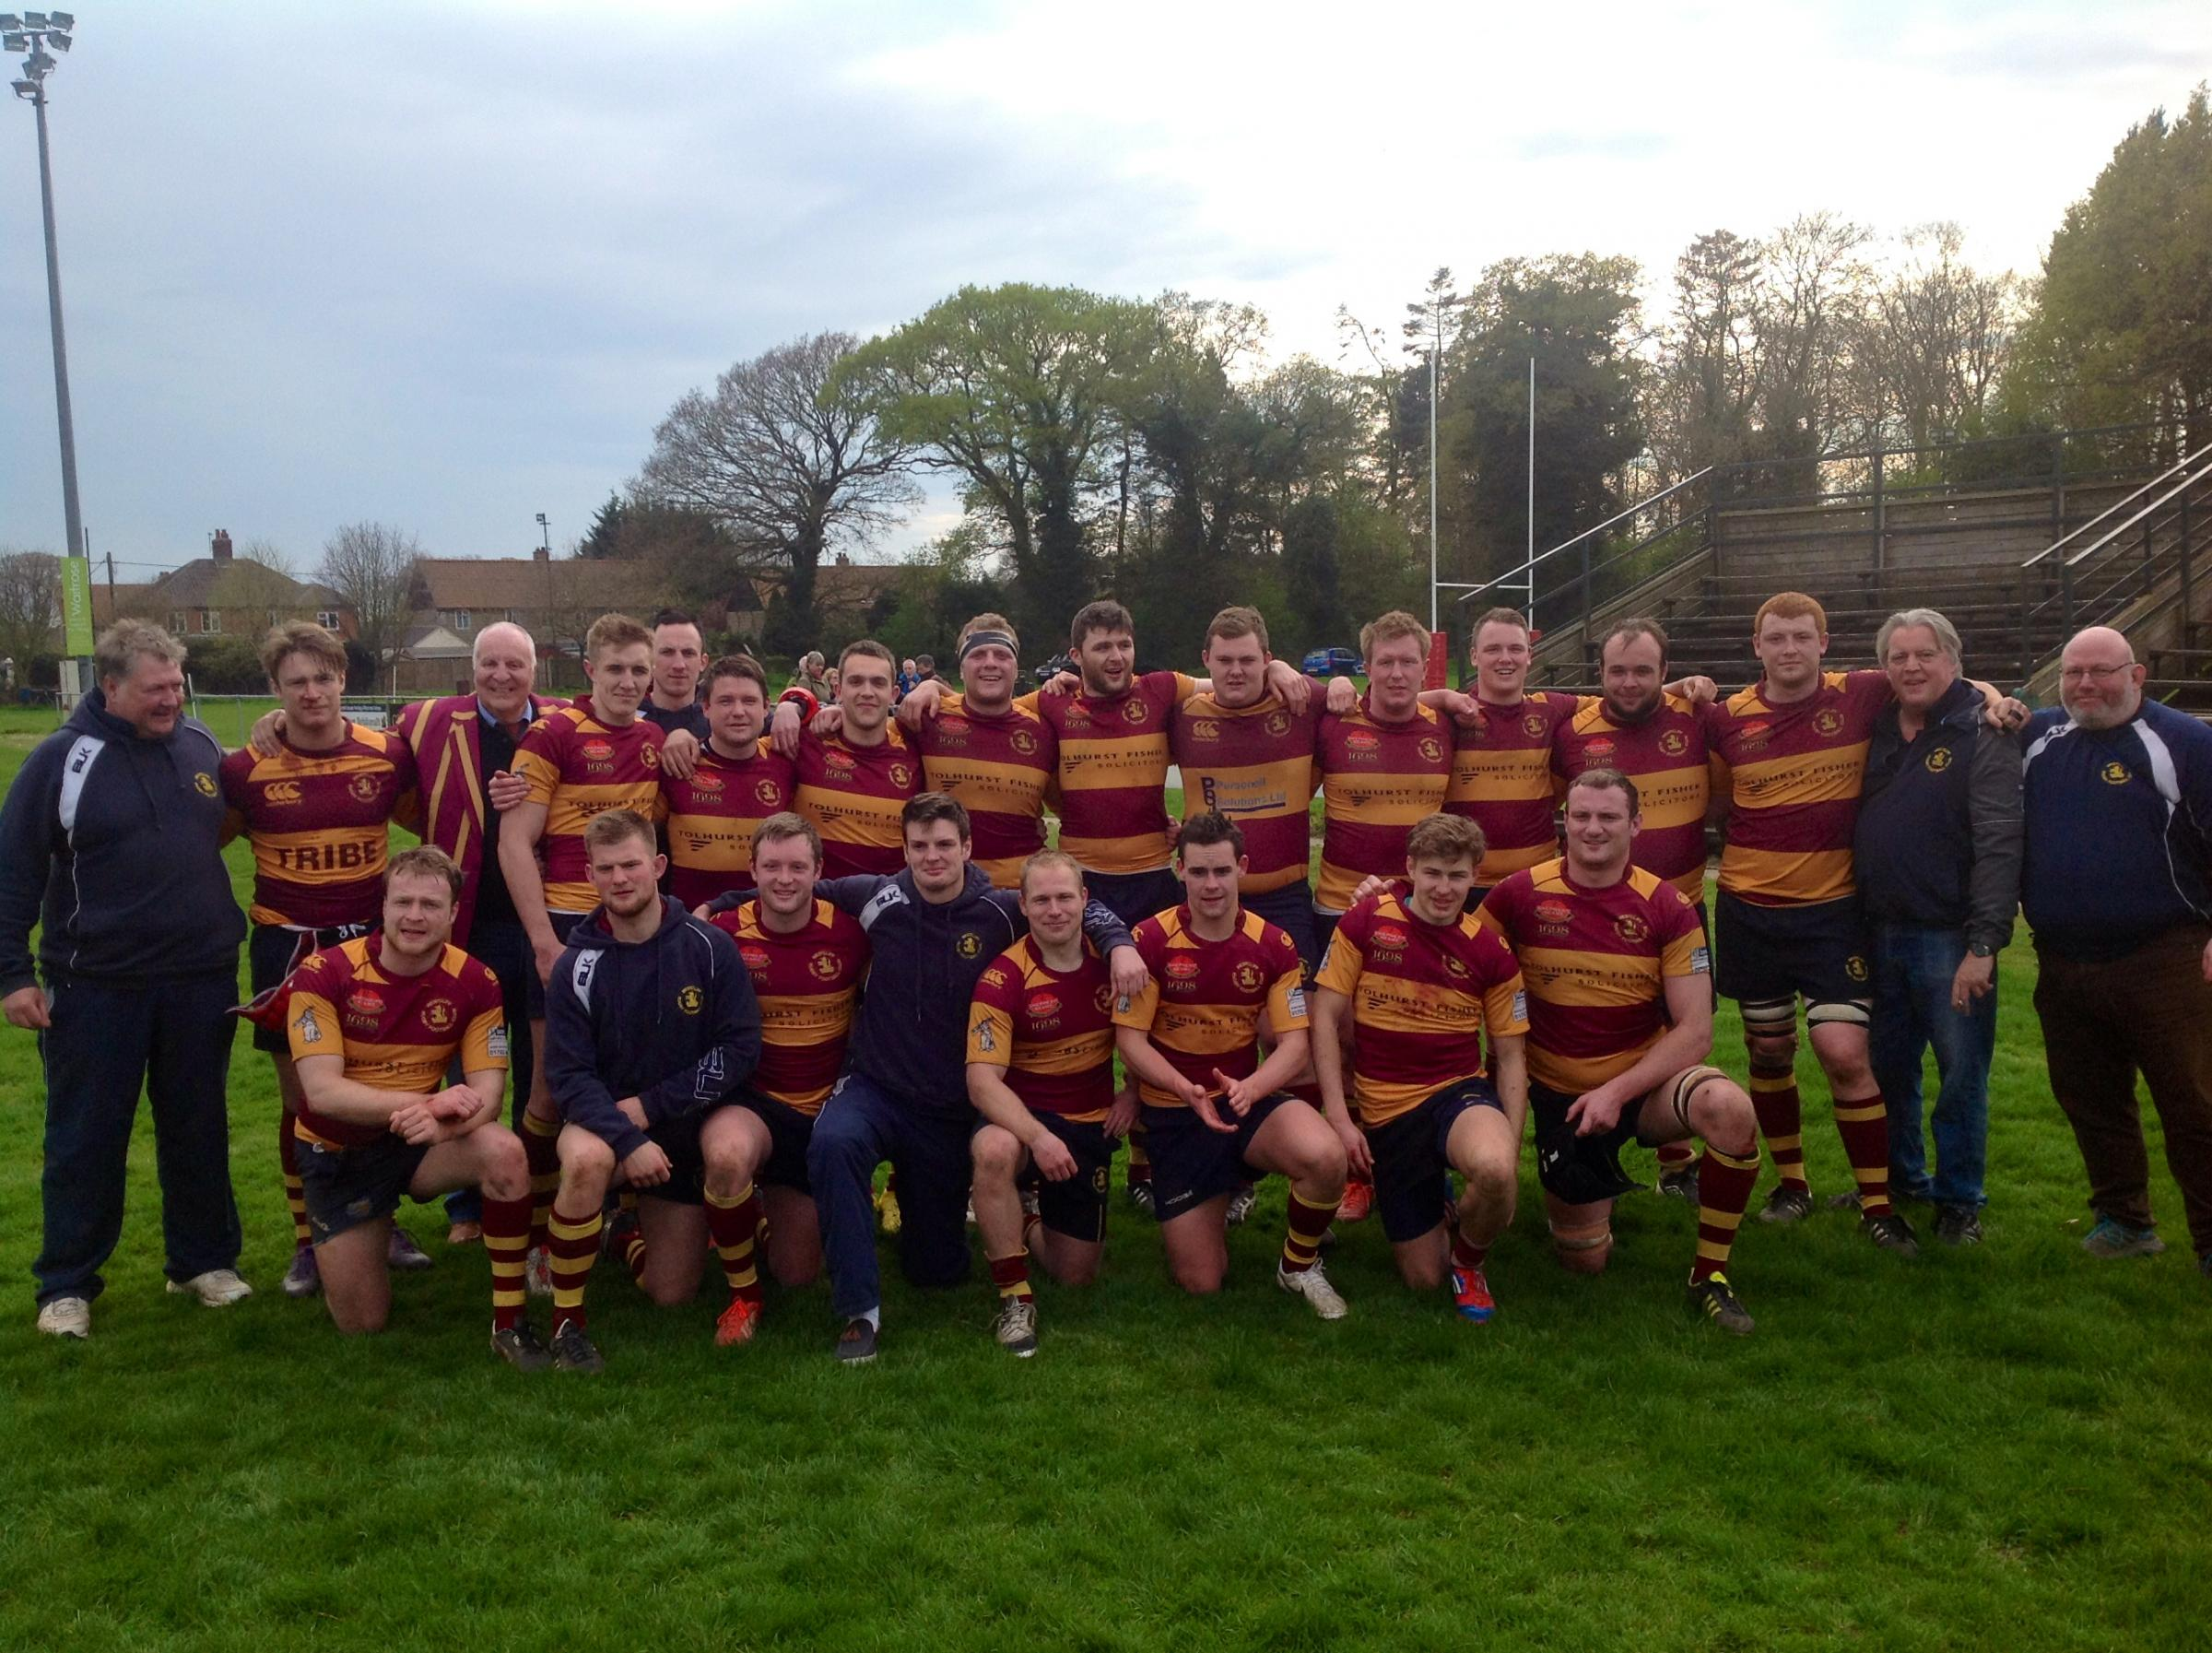 Top team — Westcliff RFC's first XI have returned to the national leagues after being crowned London One North champions